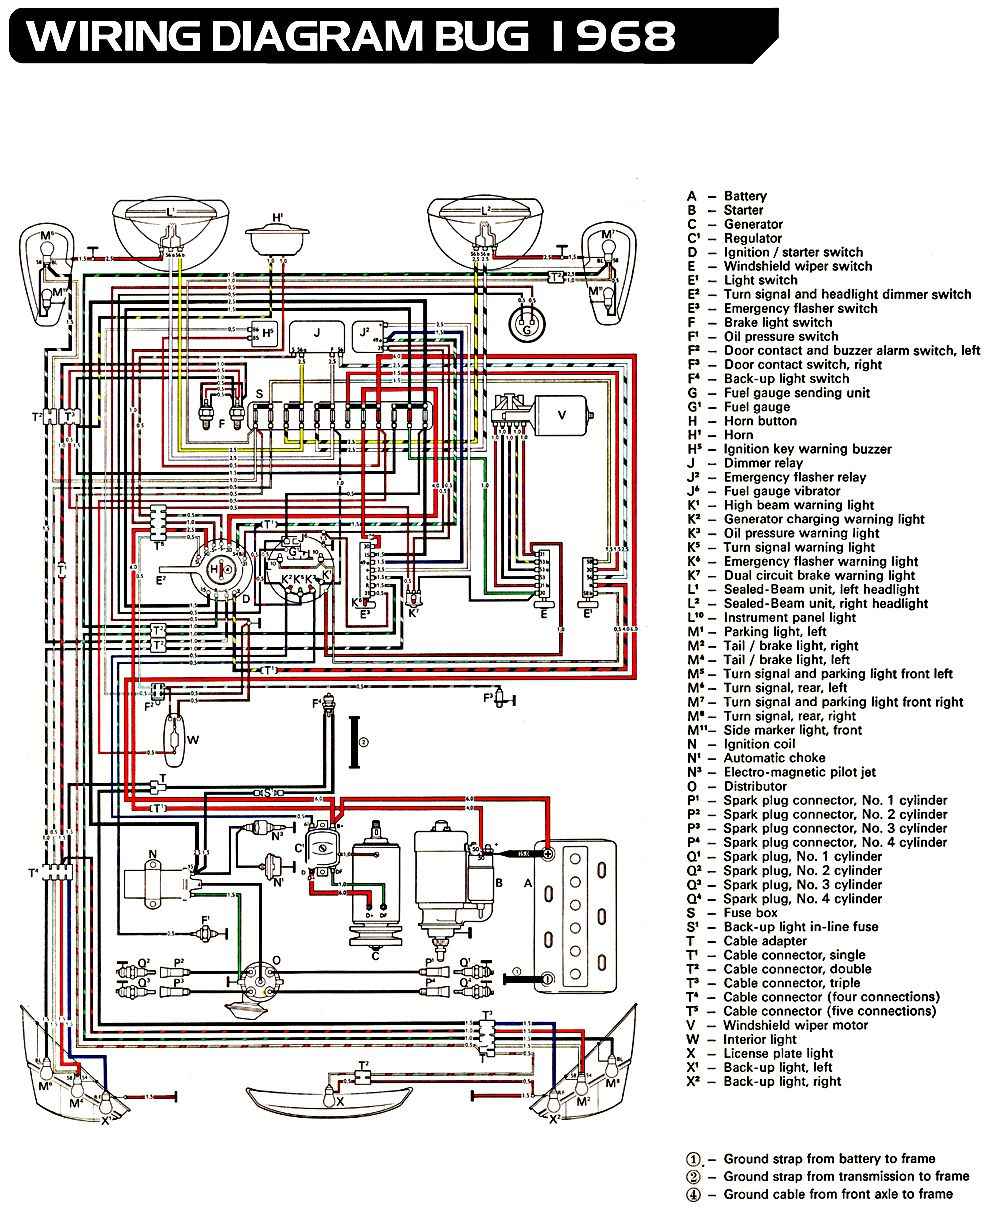 Vw Bug Ignition Wiring Diagram 73 Vw Wiring Diagram Free Vw Truck Ignition  Wiring Diagram Vw Ignition Wiring Diagram